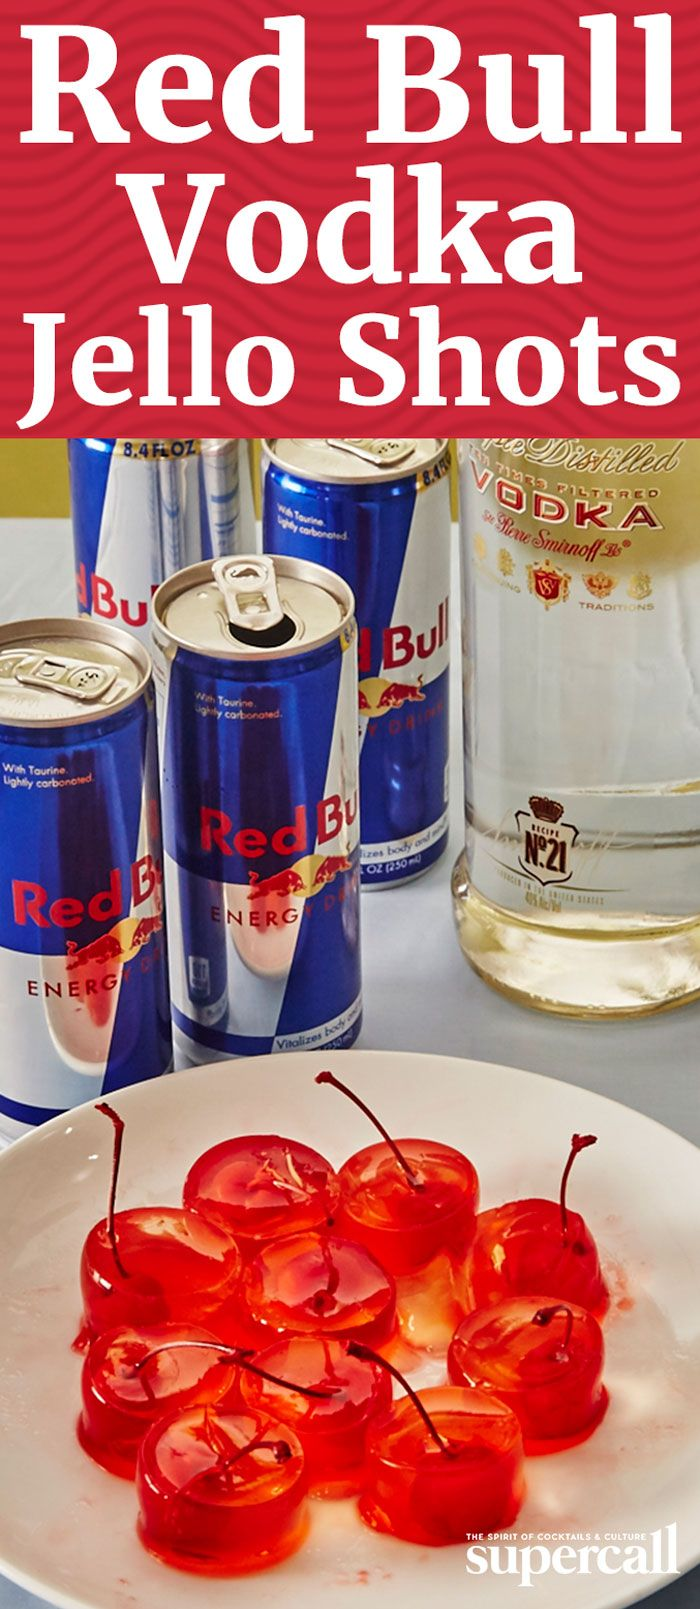 On their own, either Red Bull-Vodka or Jello Shots can fuel pretty much any night. But combine the two and you're in for a truly legendary evening. Easy to make and delicious to eat (as long as you're partial to that bittersweet Red Bull tang), these jiggly shots even come complete with their own handles, thanks to the cherry stems sticking out from each cup.